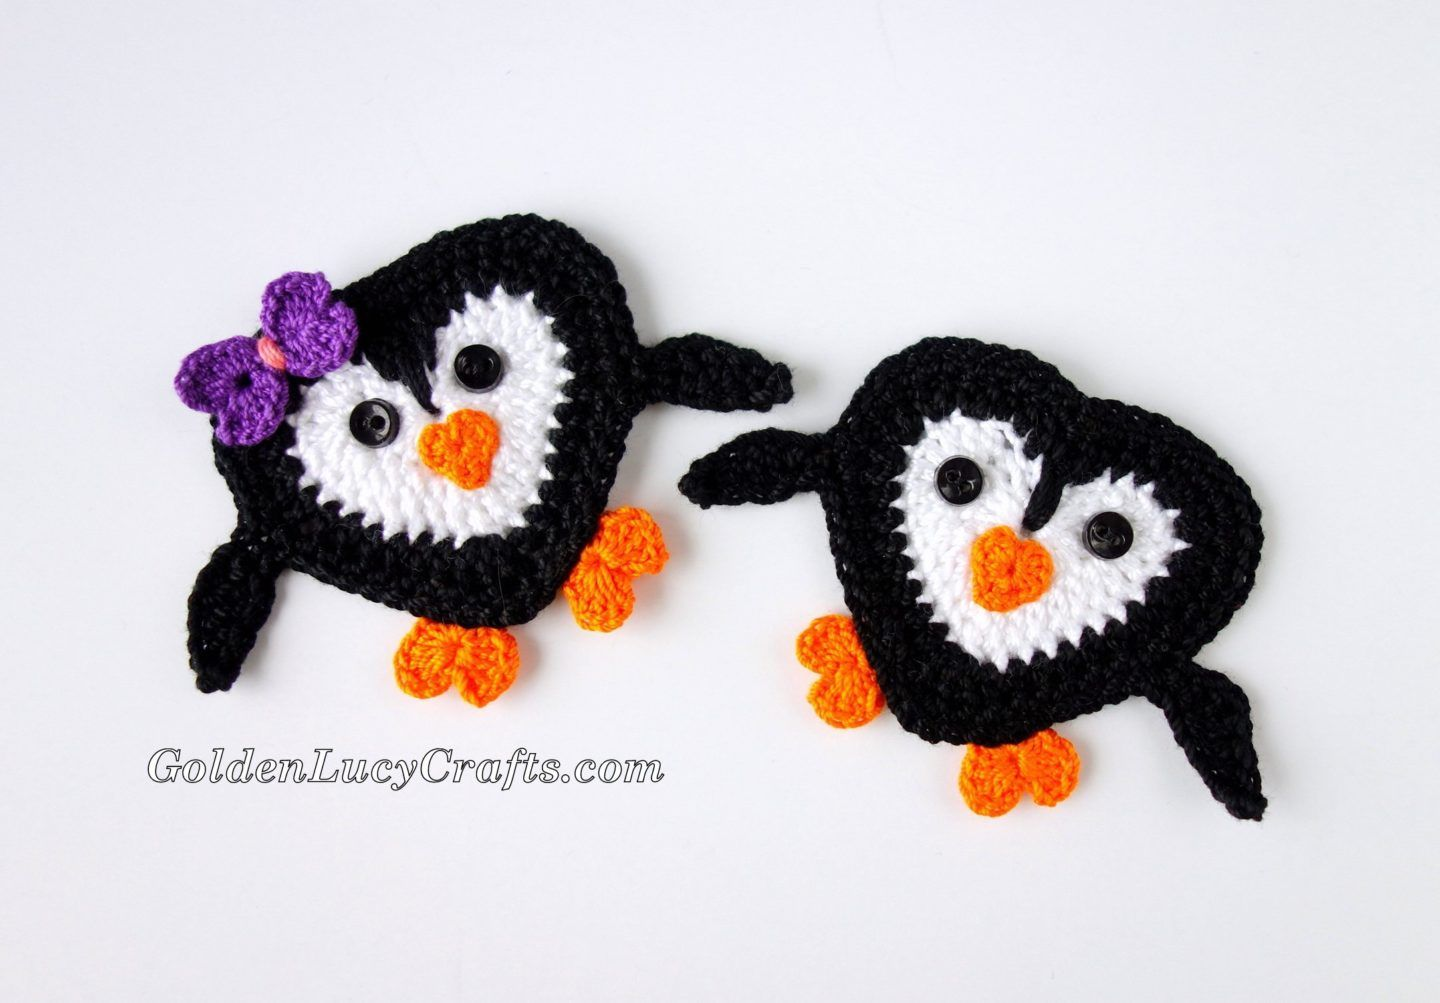 Crochet Penguin Applique, Free Crochet Pattern – GoldenLucyCrafts #crochetapplicates